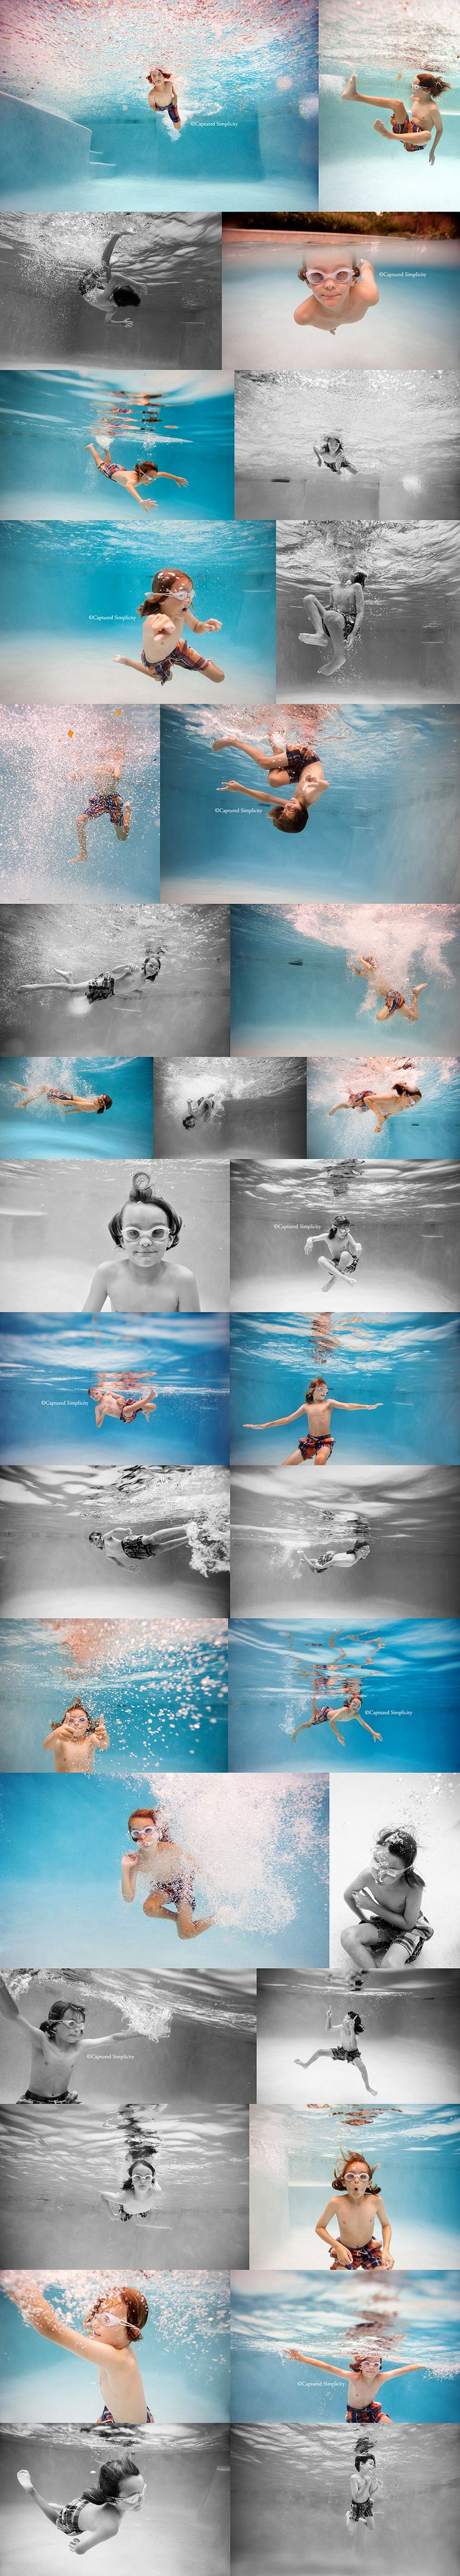 Babies swimming underwater inspiration photos - Underwater Photography Houston On Location In Home Natural Light Lifestyle Portrait Photographer